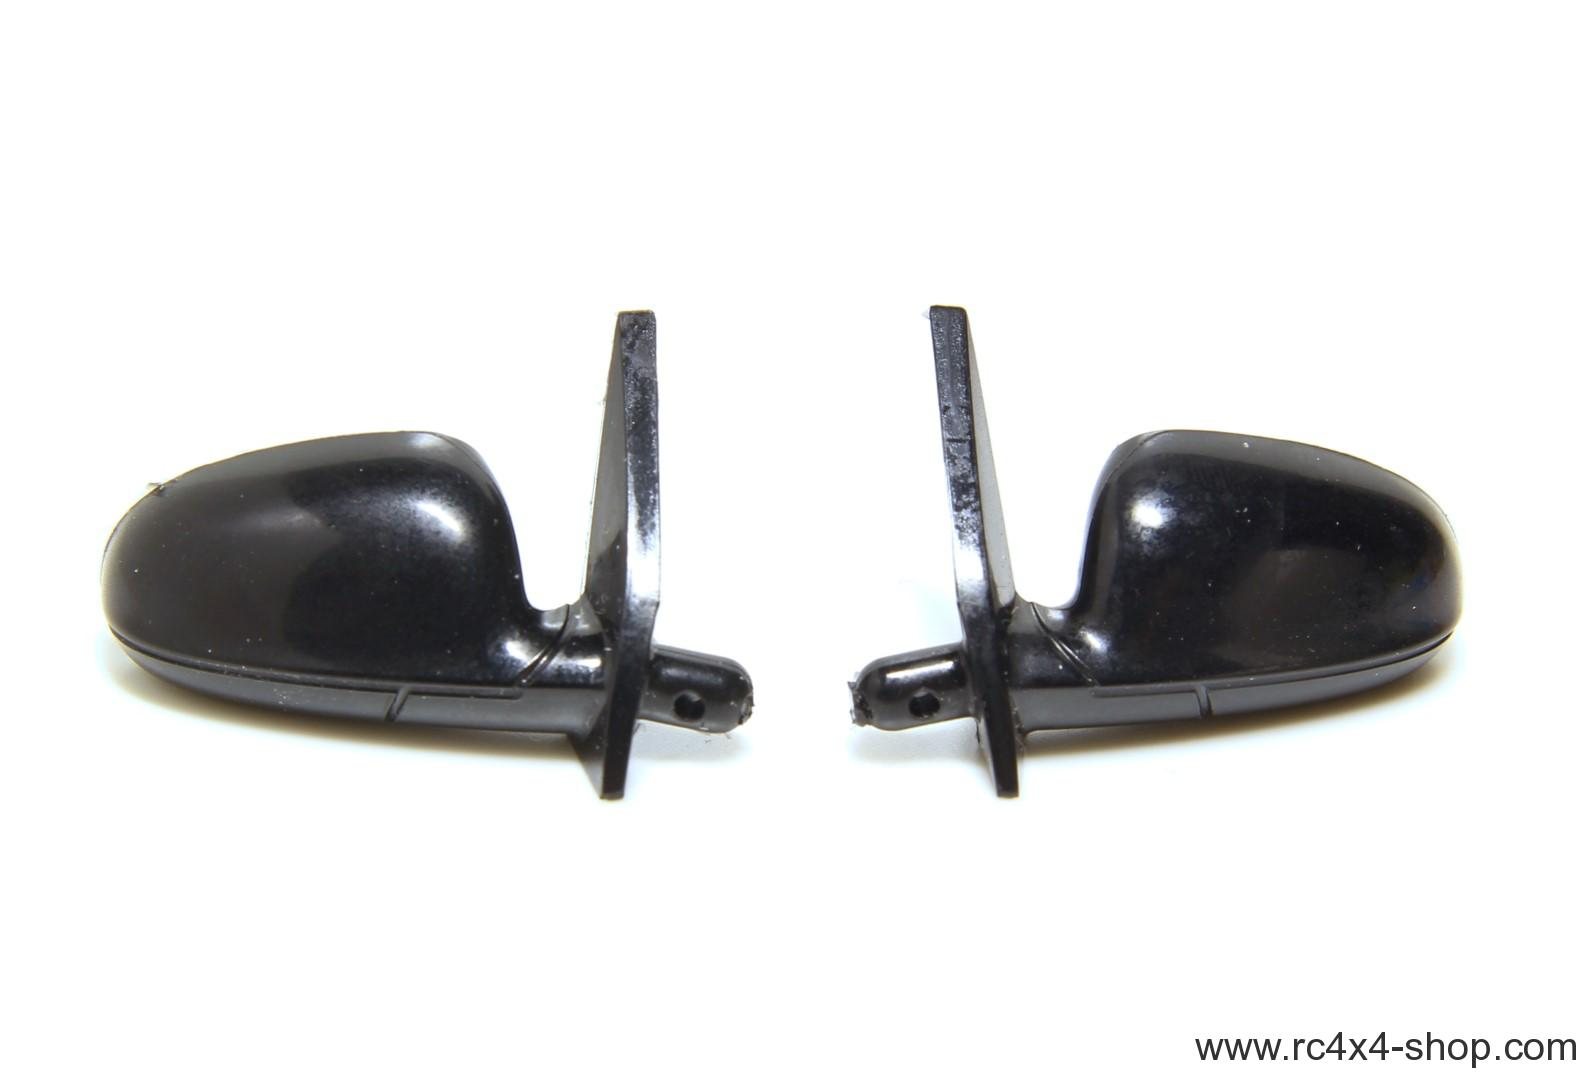 VW Amarok Rubber Mirrors